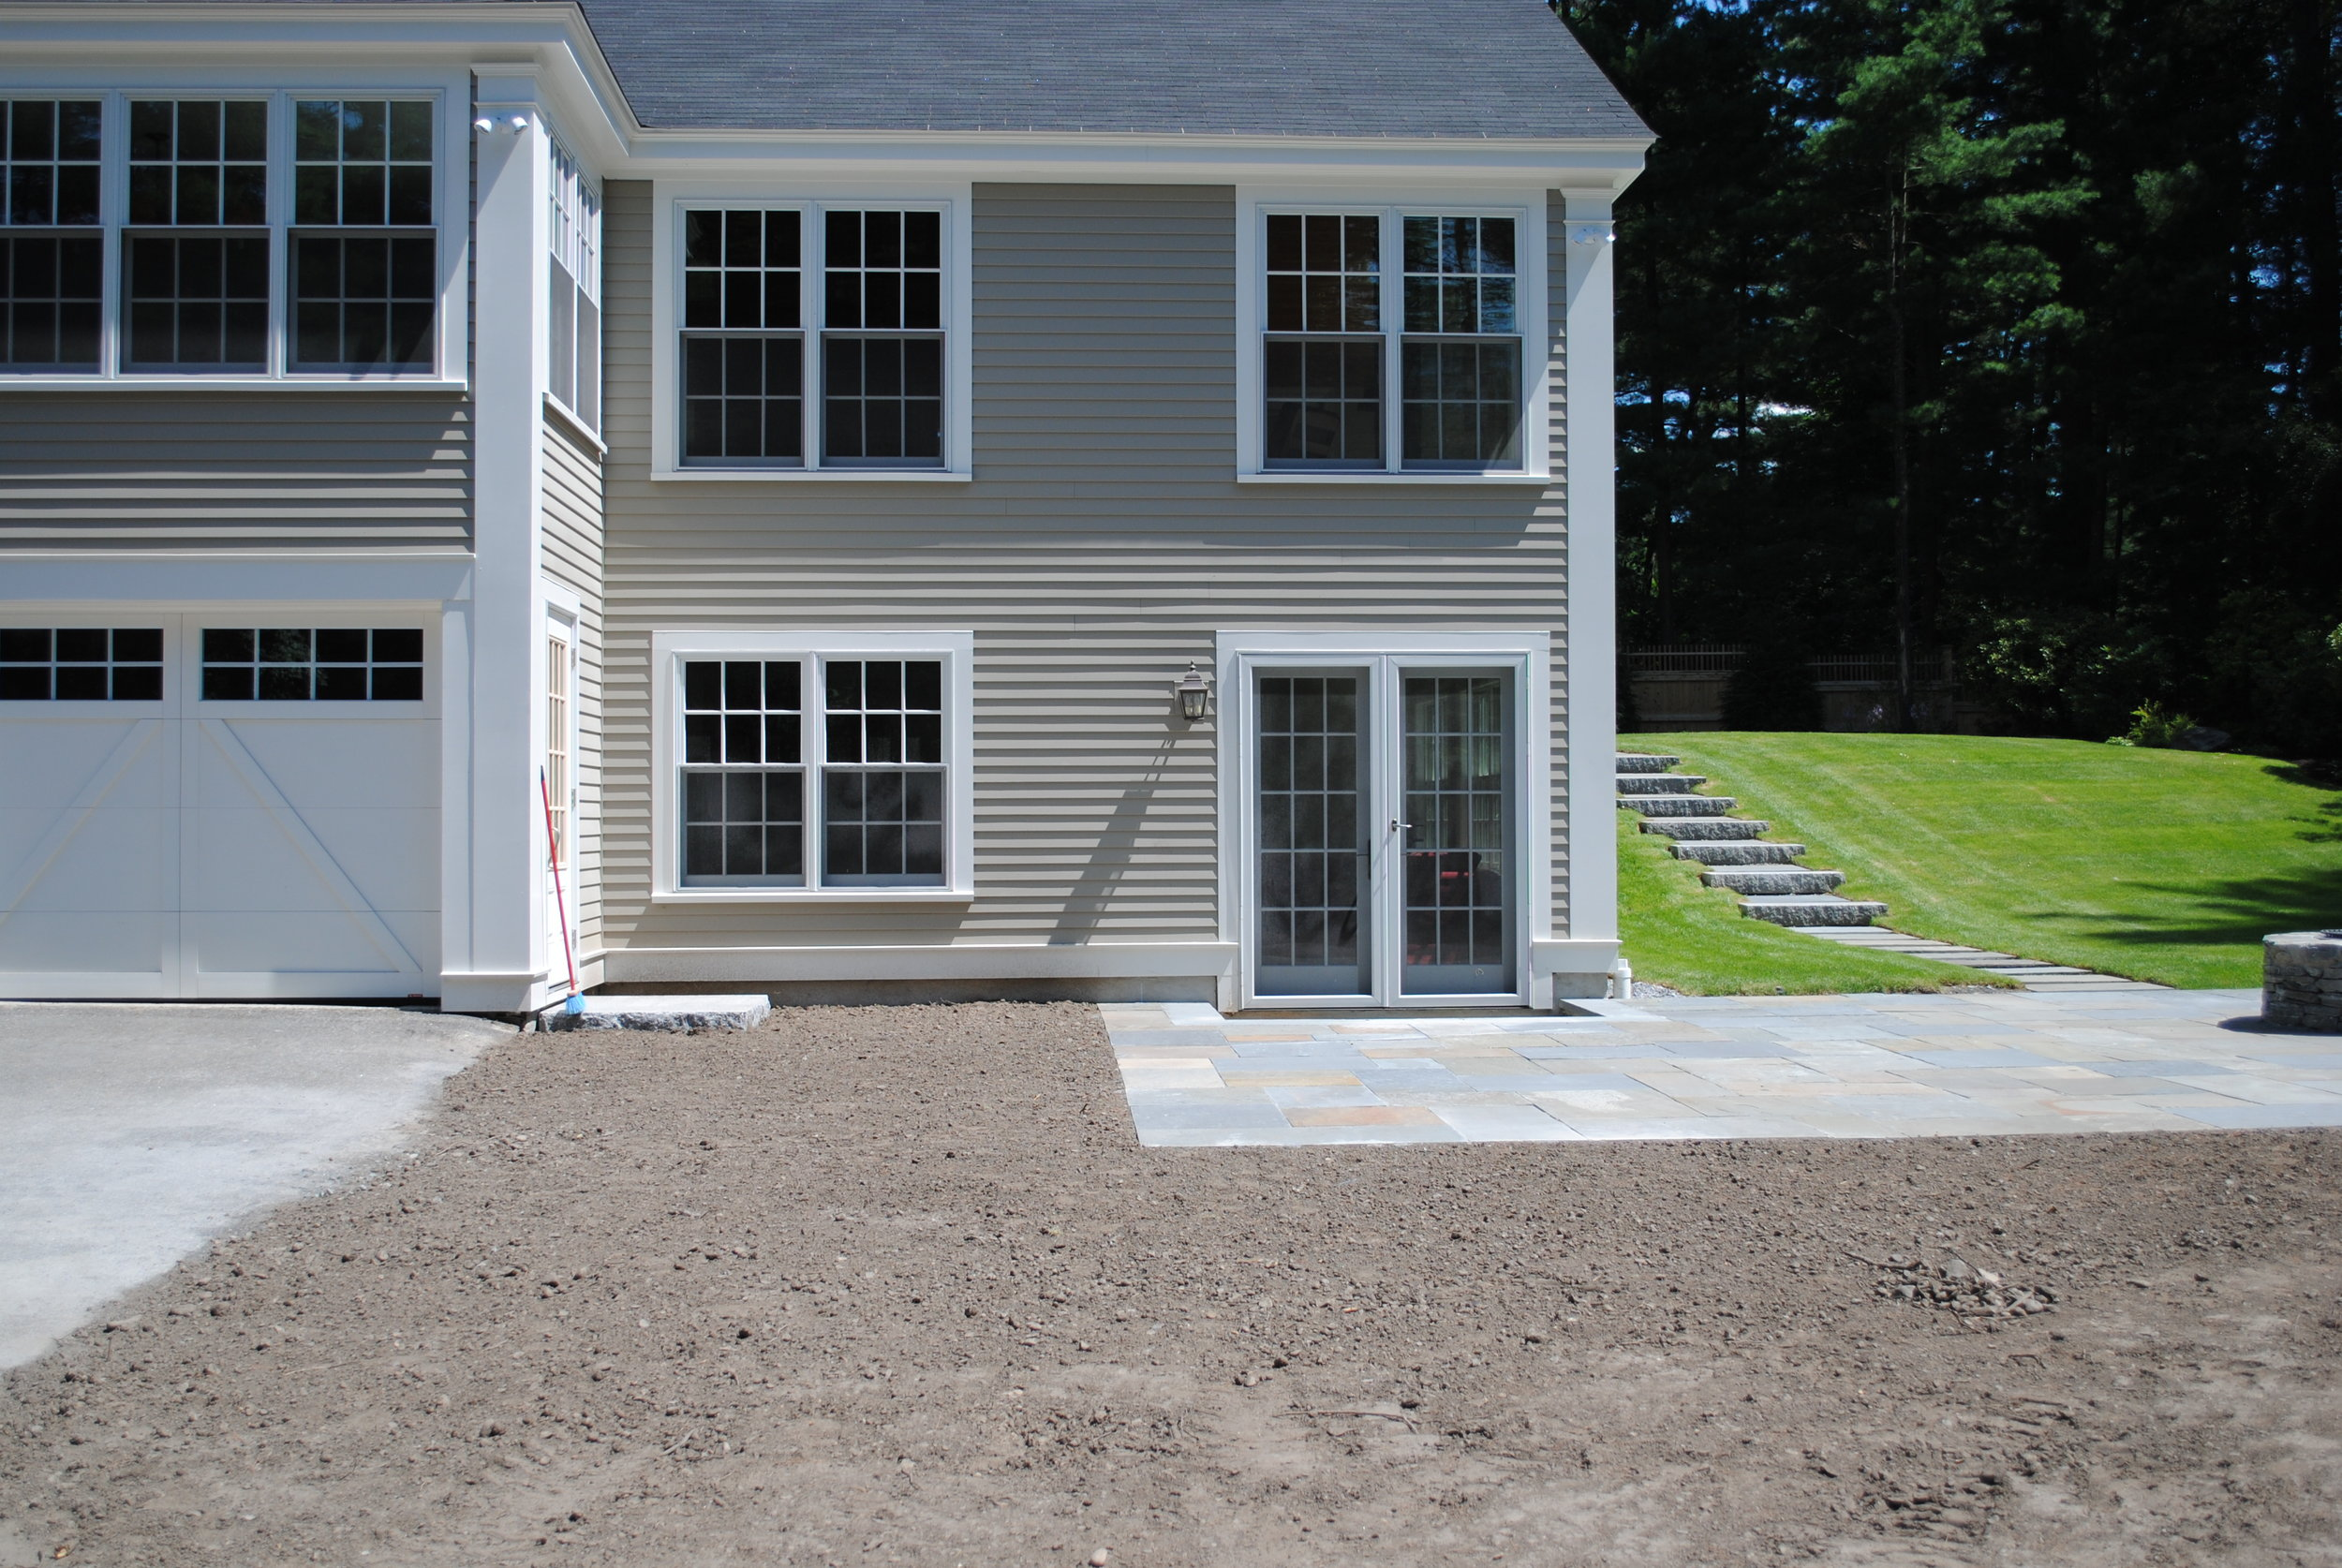 New construction of an addition to house, Sudbury, MA